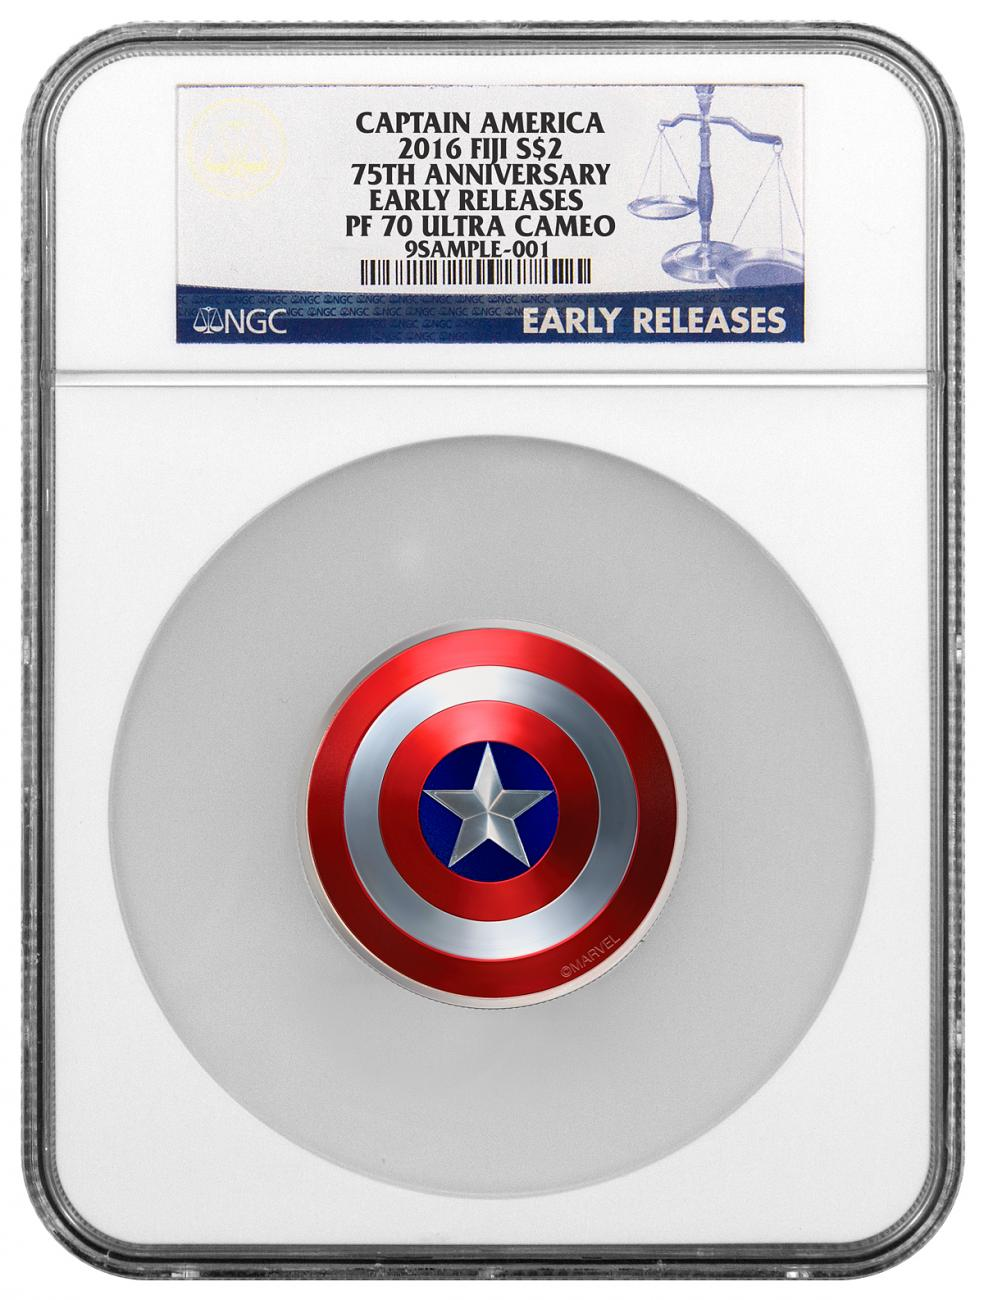 2016 Fiji Captain America Shield 2 oz Silver Colorized Proof $2 Coin NGC PF70 UC ER